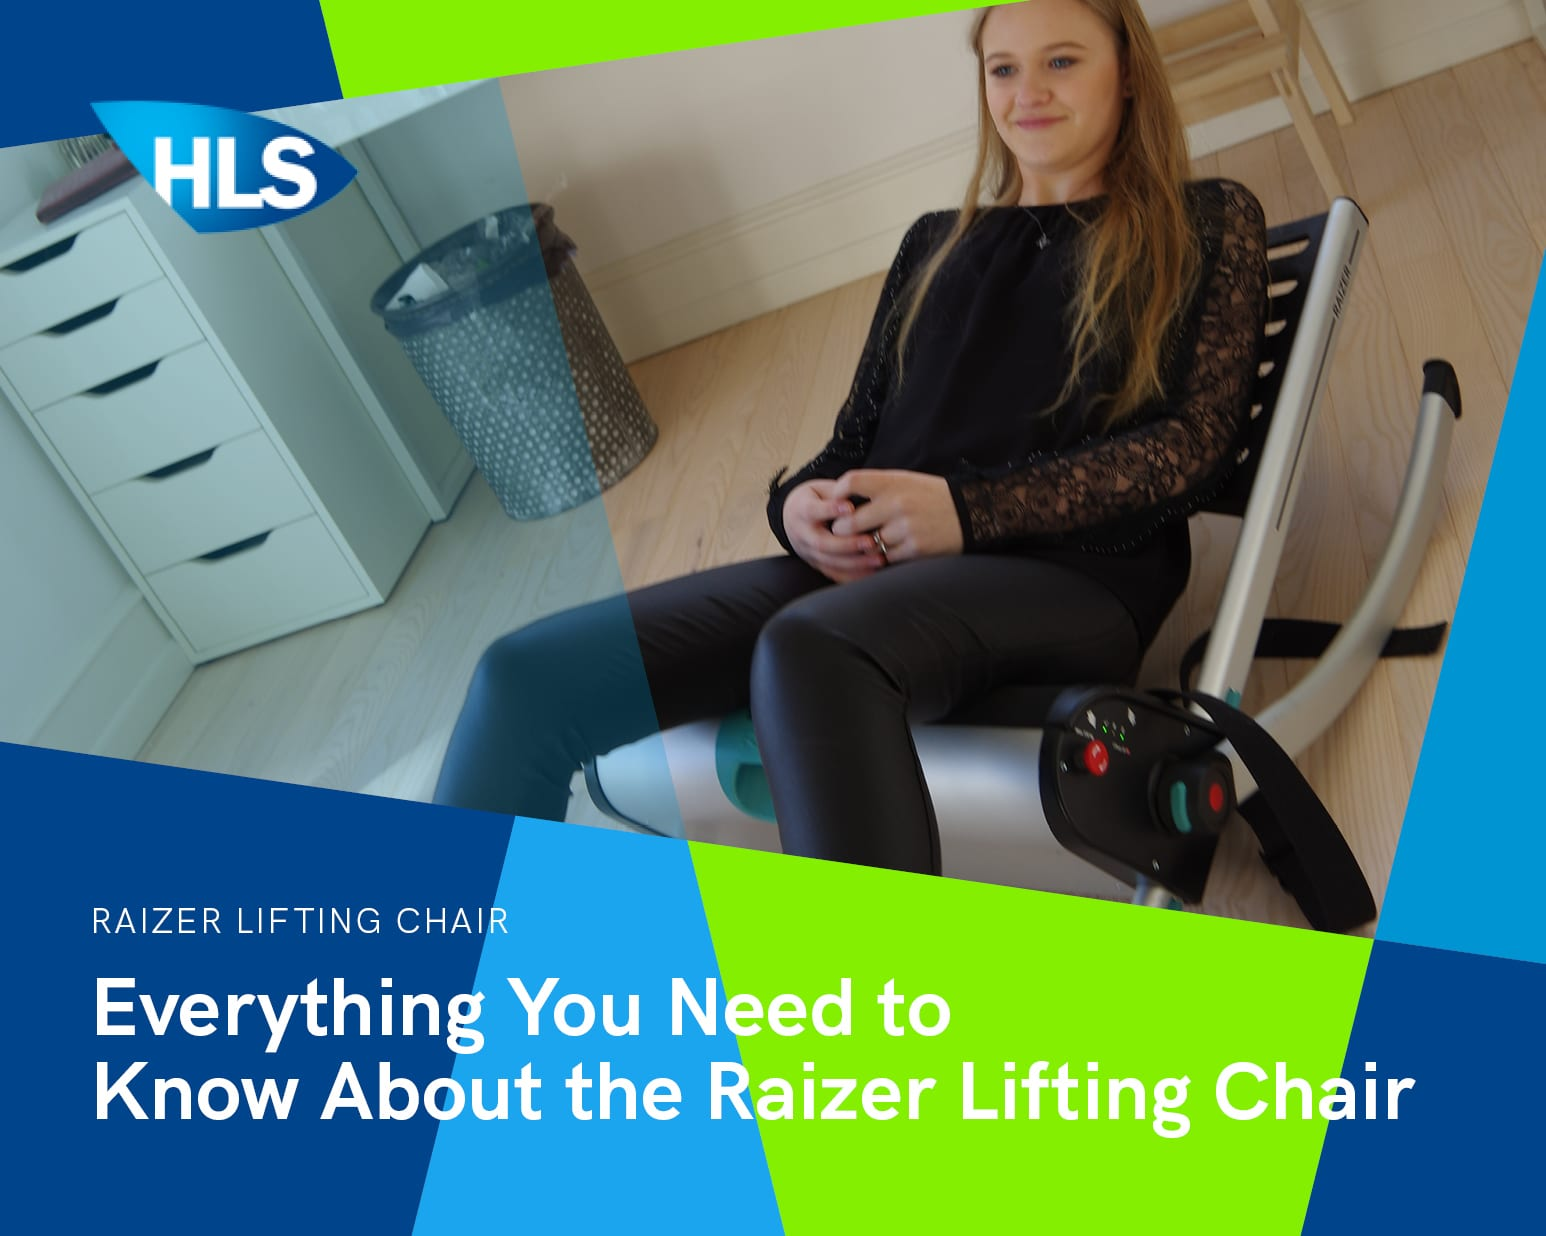 Everything You Need to Know about the Raizer Lifting Chair